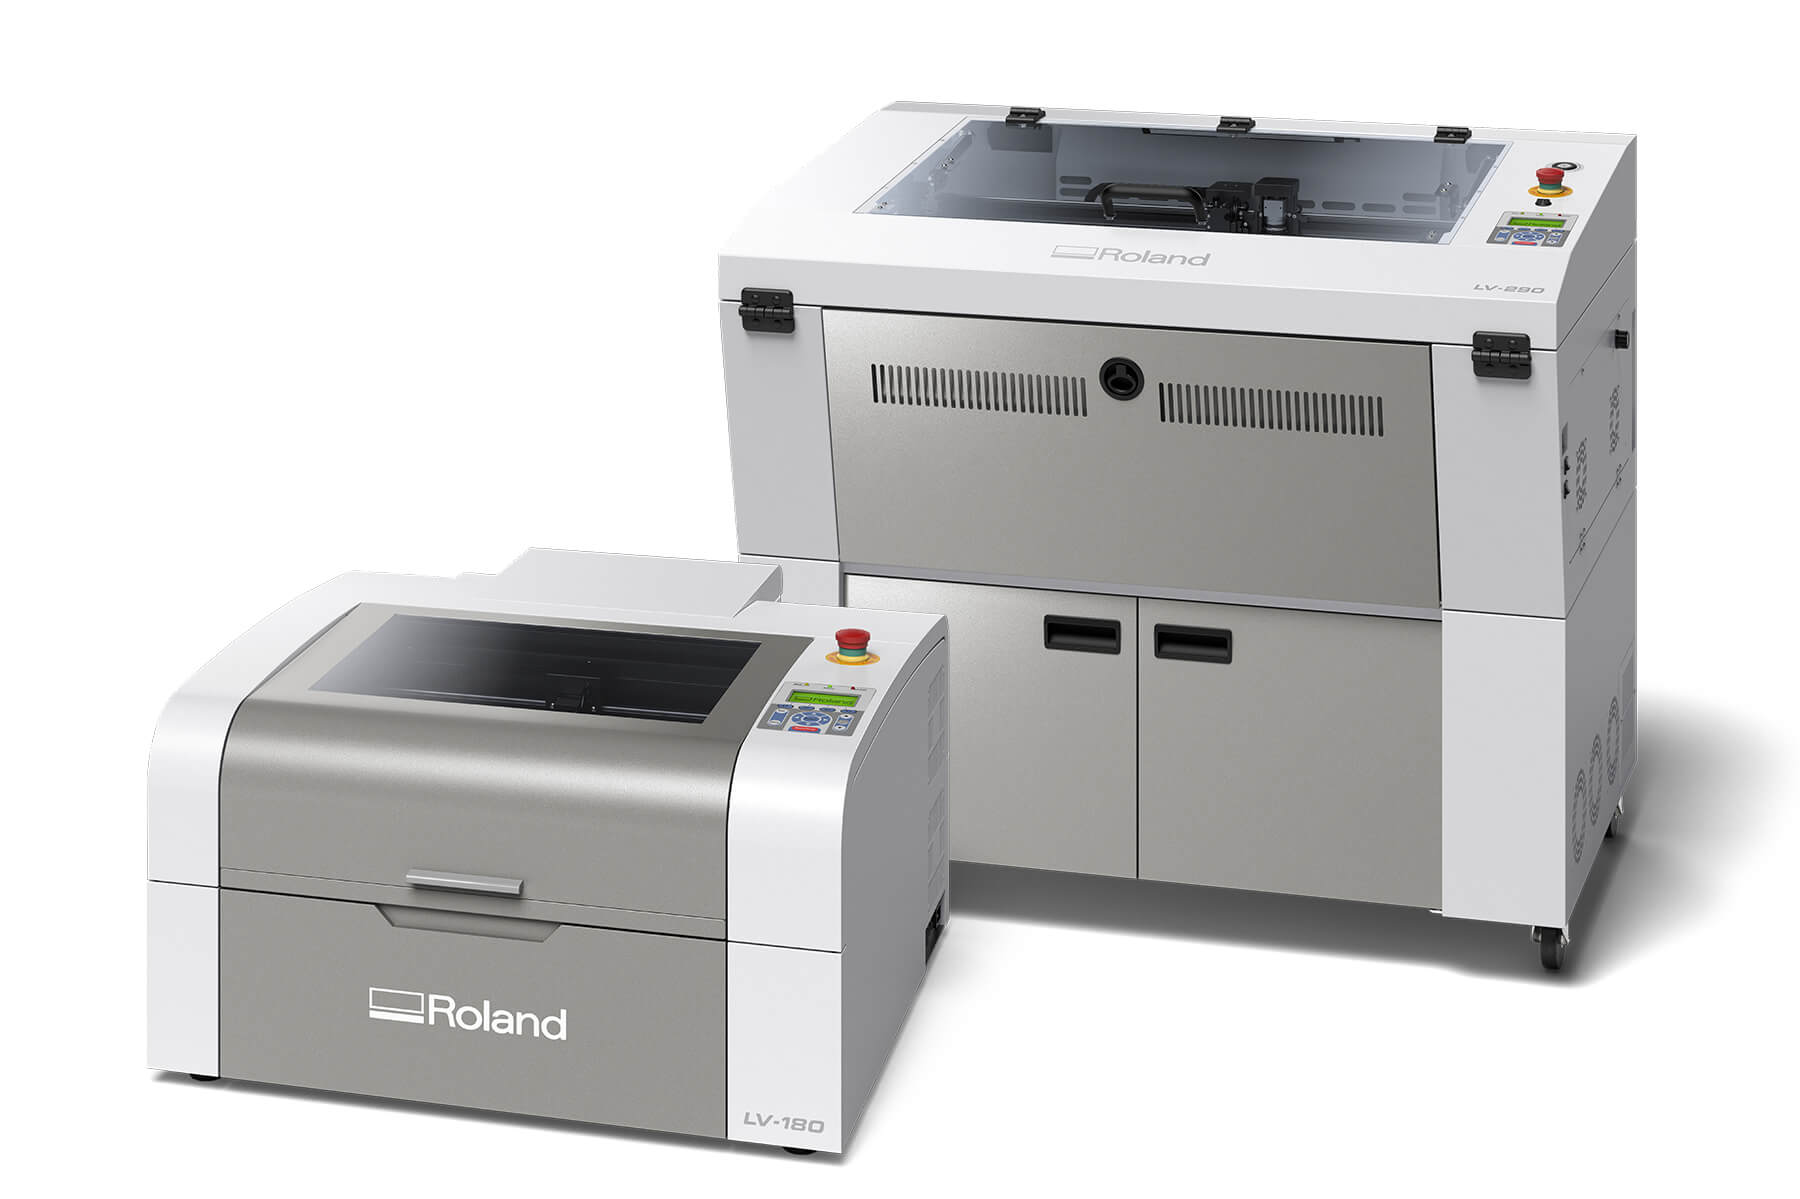 Roland DGA will be showcasing its advanced LV series engravers (shown in photo), as well as its innovative VersaUV LEF2 UV printers, at the 2020 Pacific Design and Engraving Expo.